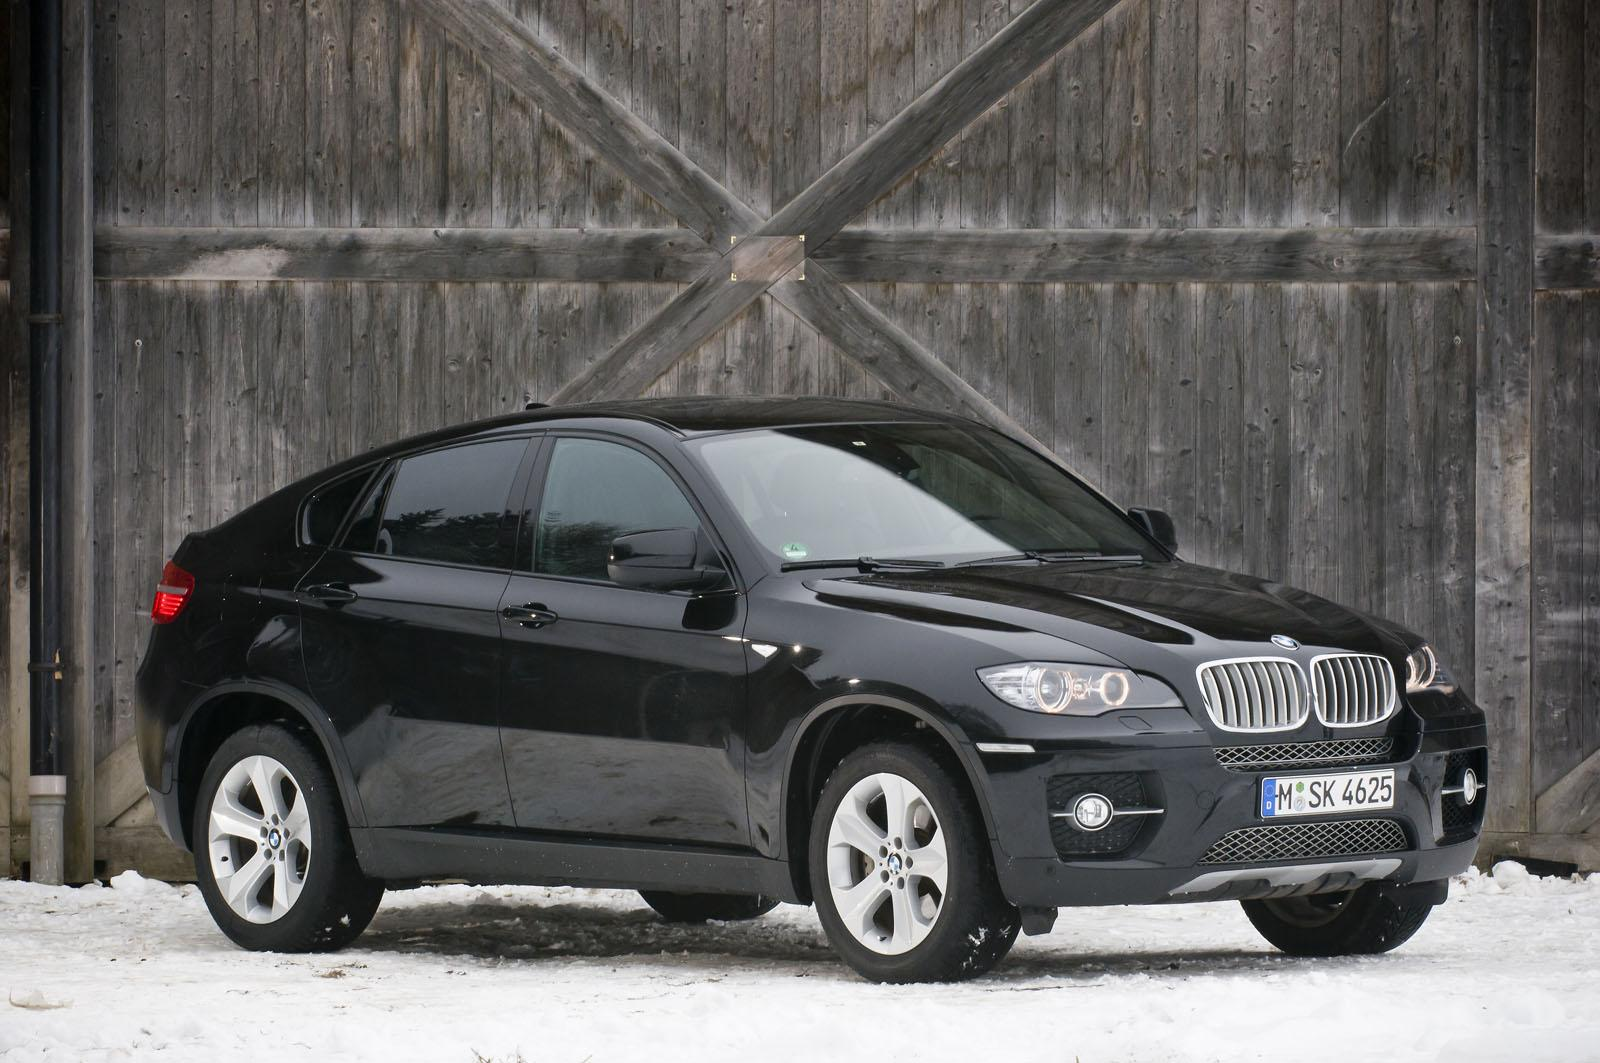 2012 BMW X5 and X6 Models 2012 BMW Announced Plans to Release Upgraded X5 and X6 Models